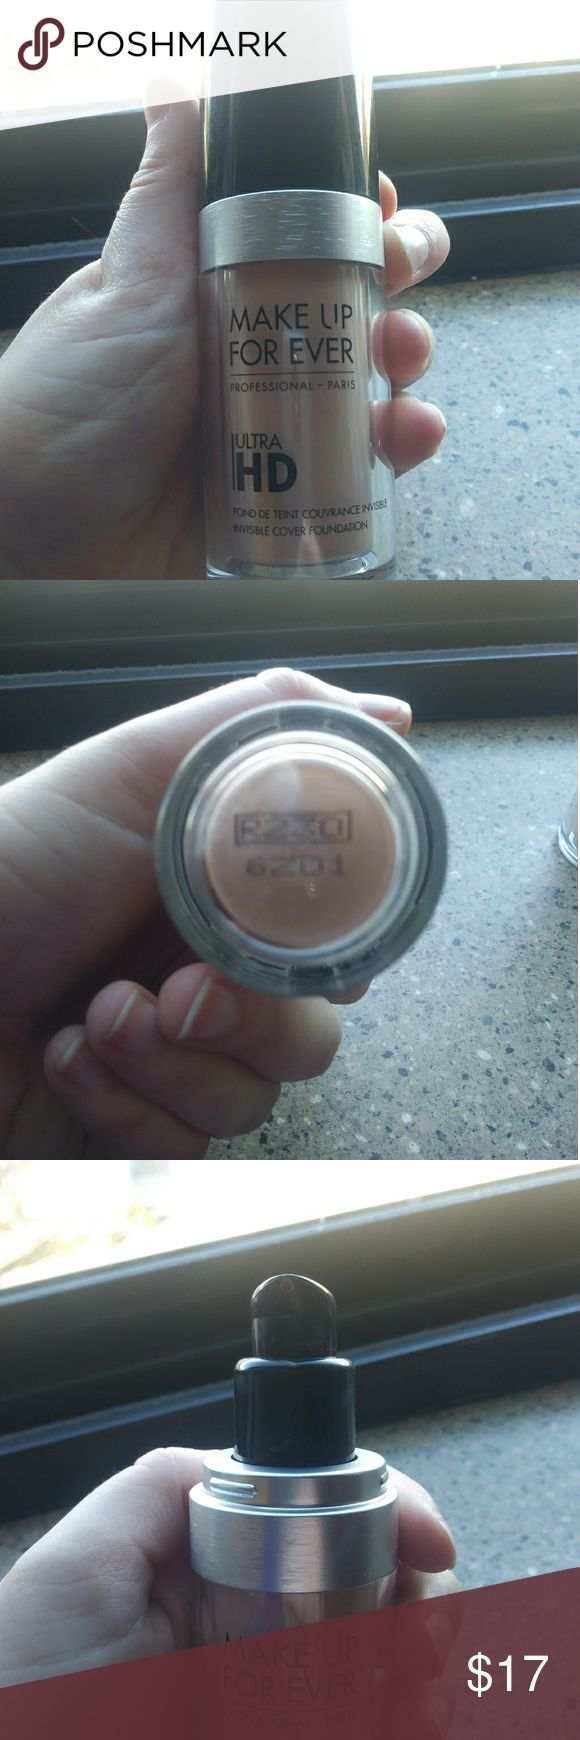 Make Up Forever Ultra HD Foundation (R230) A medium coverage foundation in the shade R230. I do stage makeup and I am decluttering my kit. This foundation is essentially new. I used it for one time so a max of 3 pumps. Makeup Forever Makeup Foundation